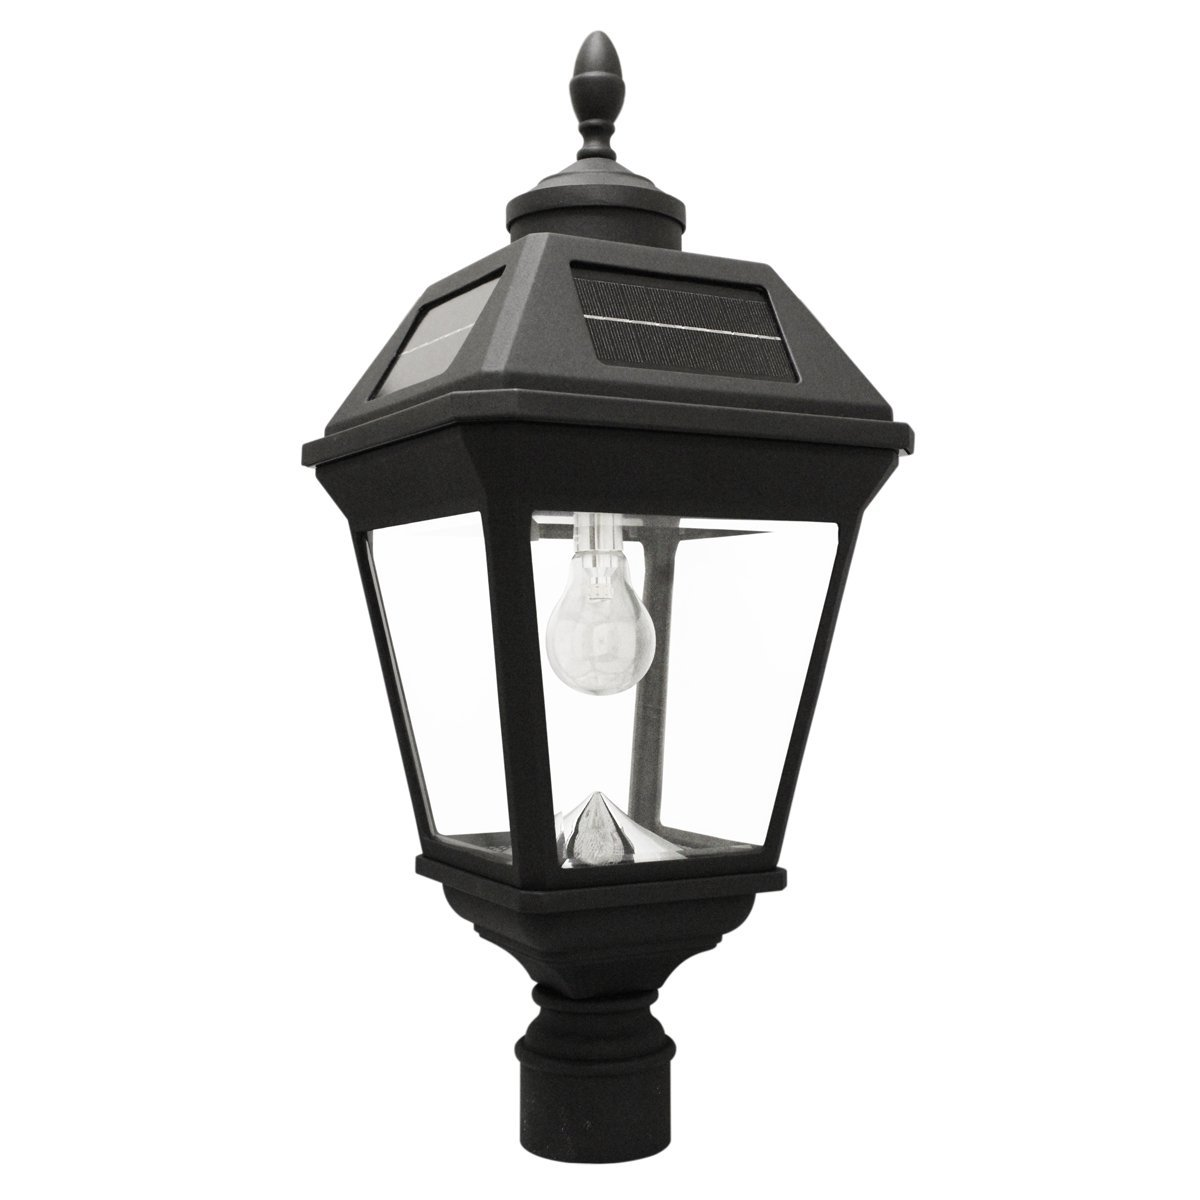 Gama Sonic Imperial Bulb Solar Outdoor Post Light GS-97B-F - Black Finish